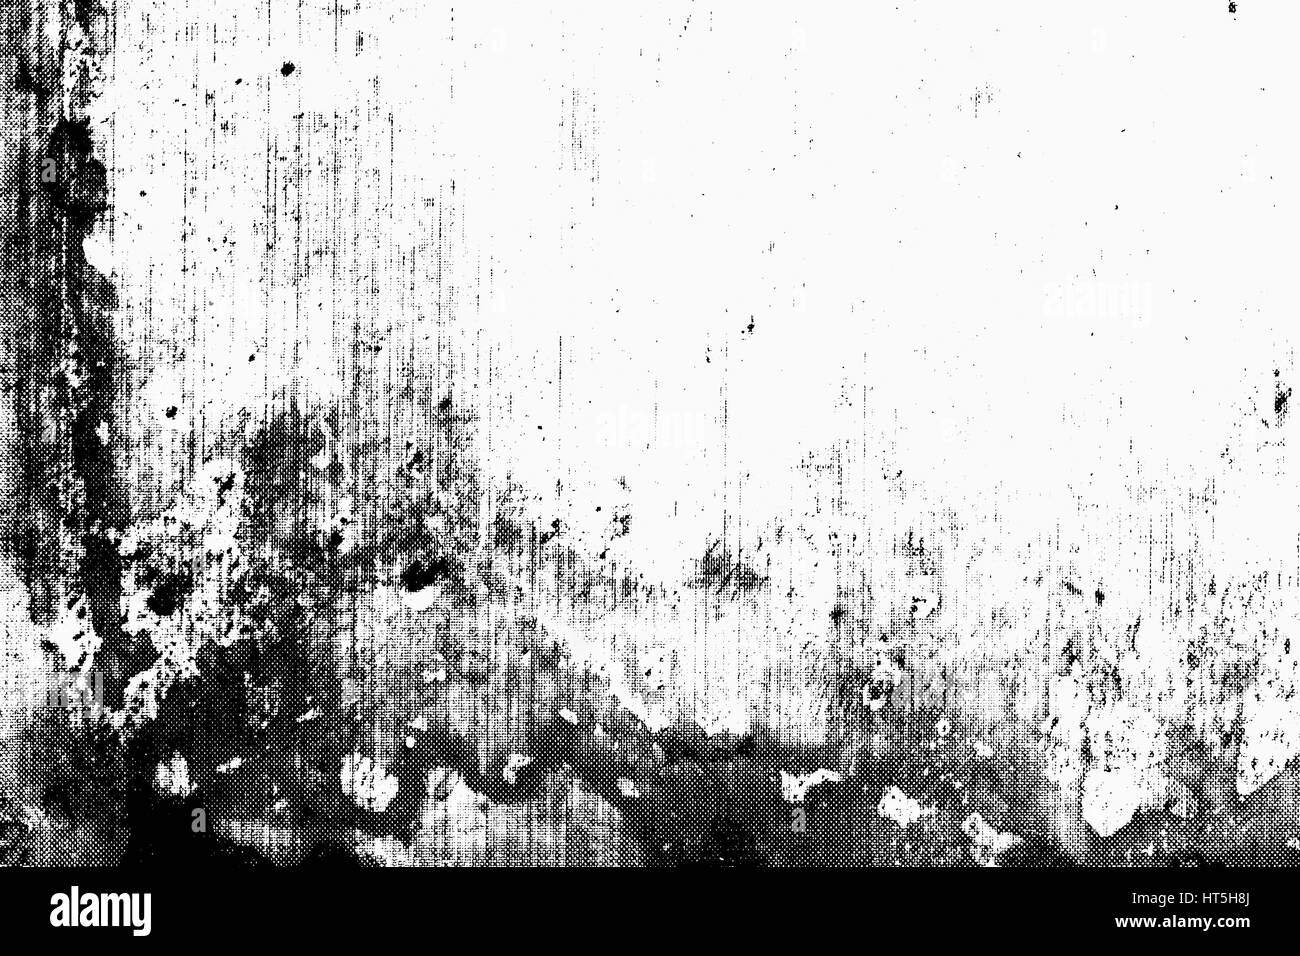 Black grunge texture background. Abstract grunge texture on distress wall in dark. Distress grunge texture background - Stock Image